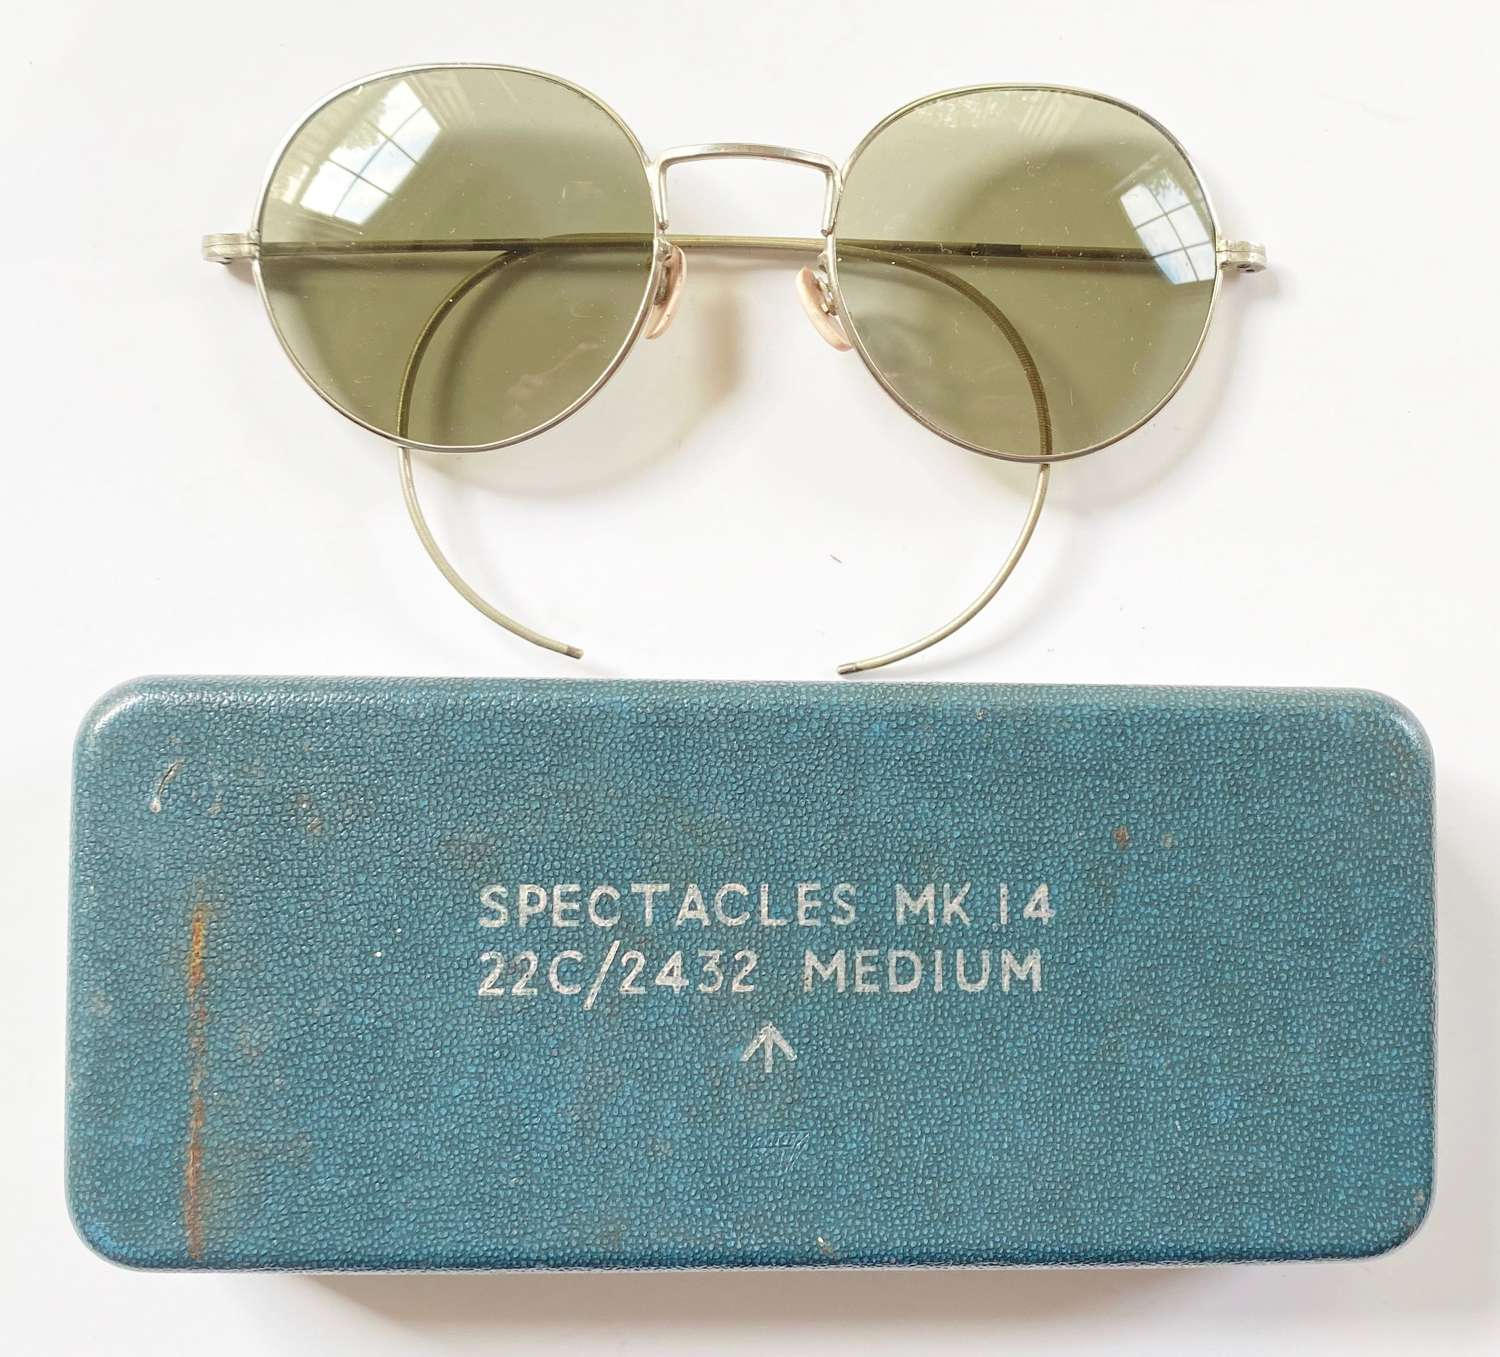 RAF Cold War Period Aircrew Spectacles MK14 Sun Glasses.